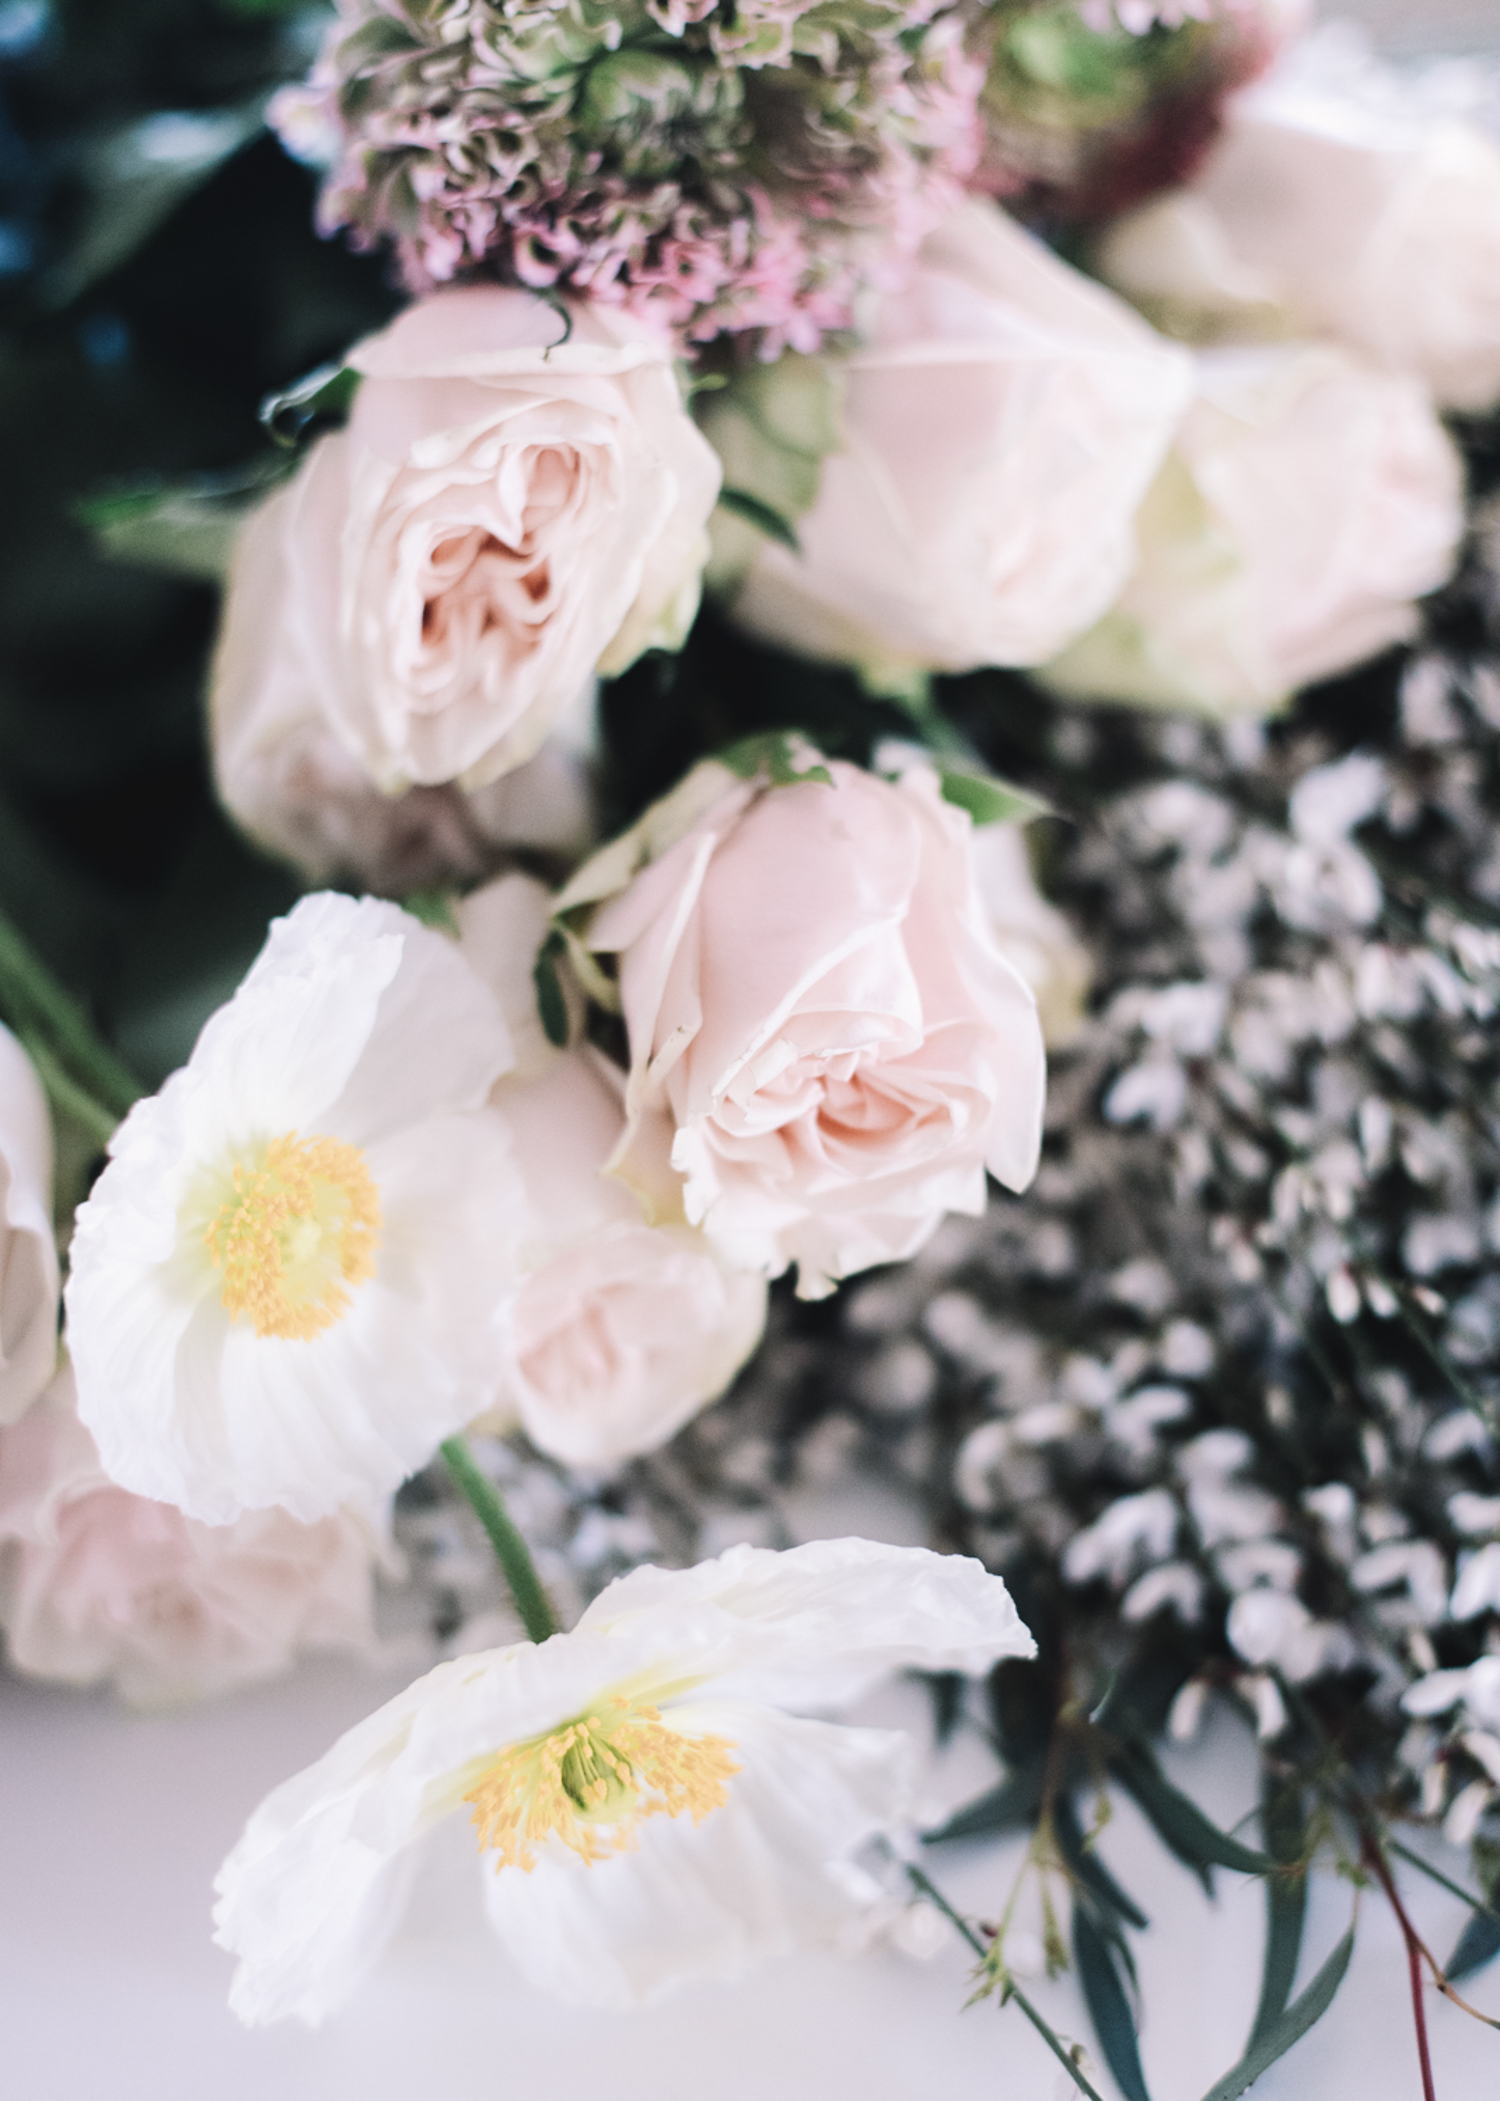 DIY Floral Arrangement | A Fabulous Fete